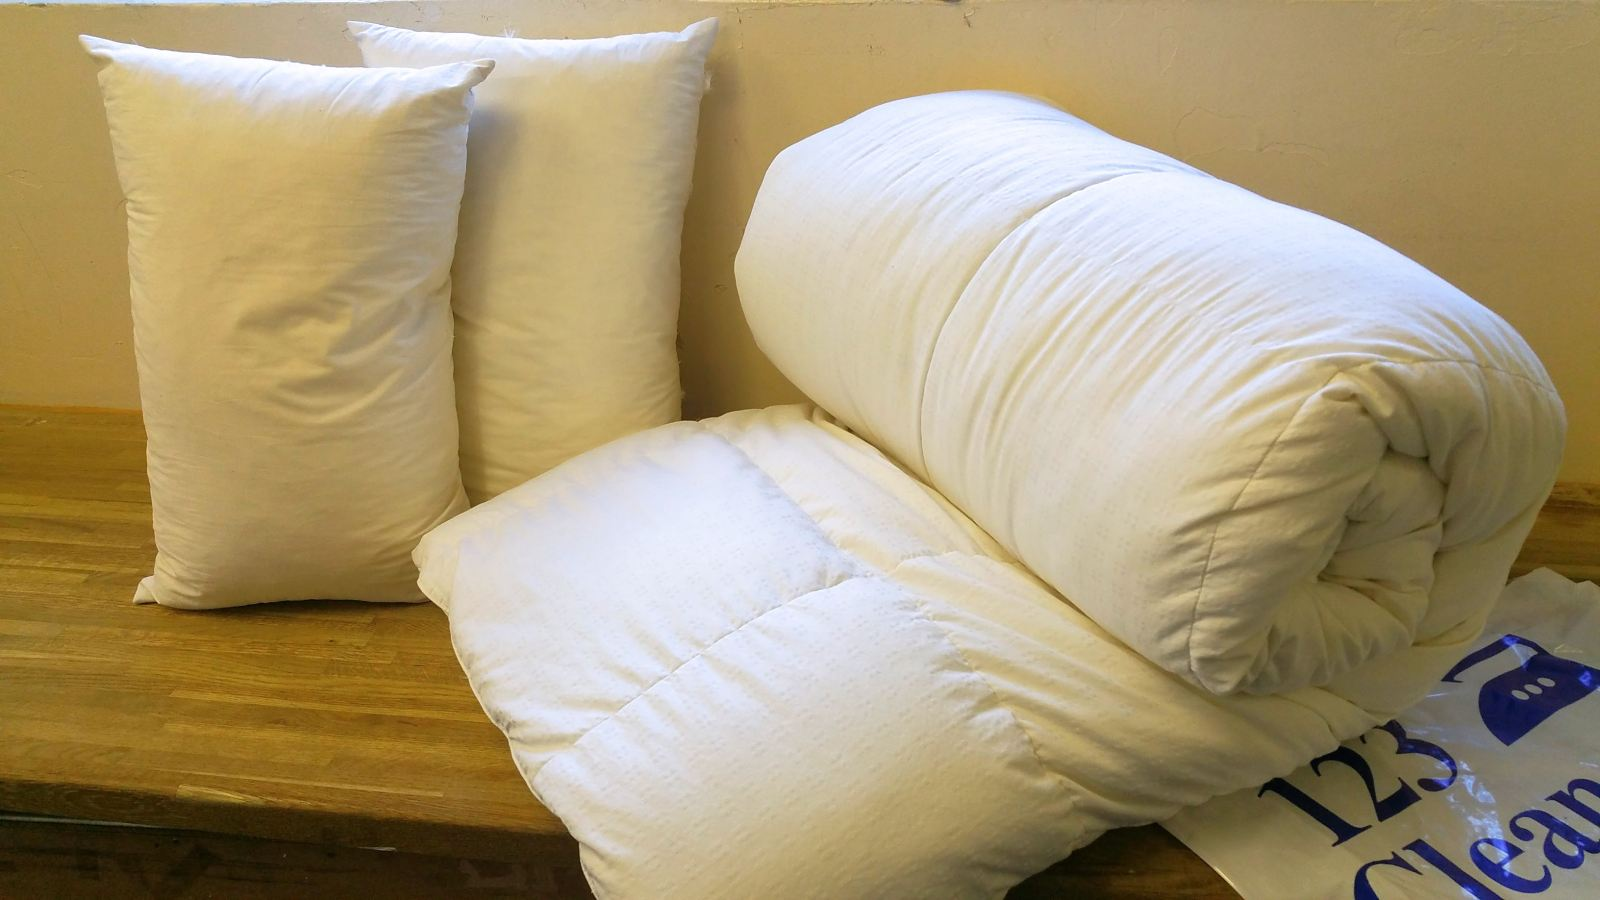 Duvet And Pillow Cleaning Services London 123 Cleaners